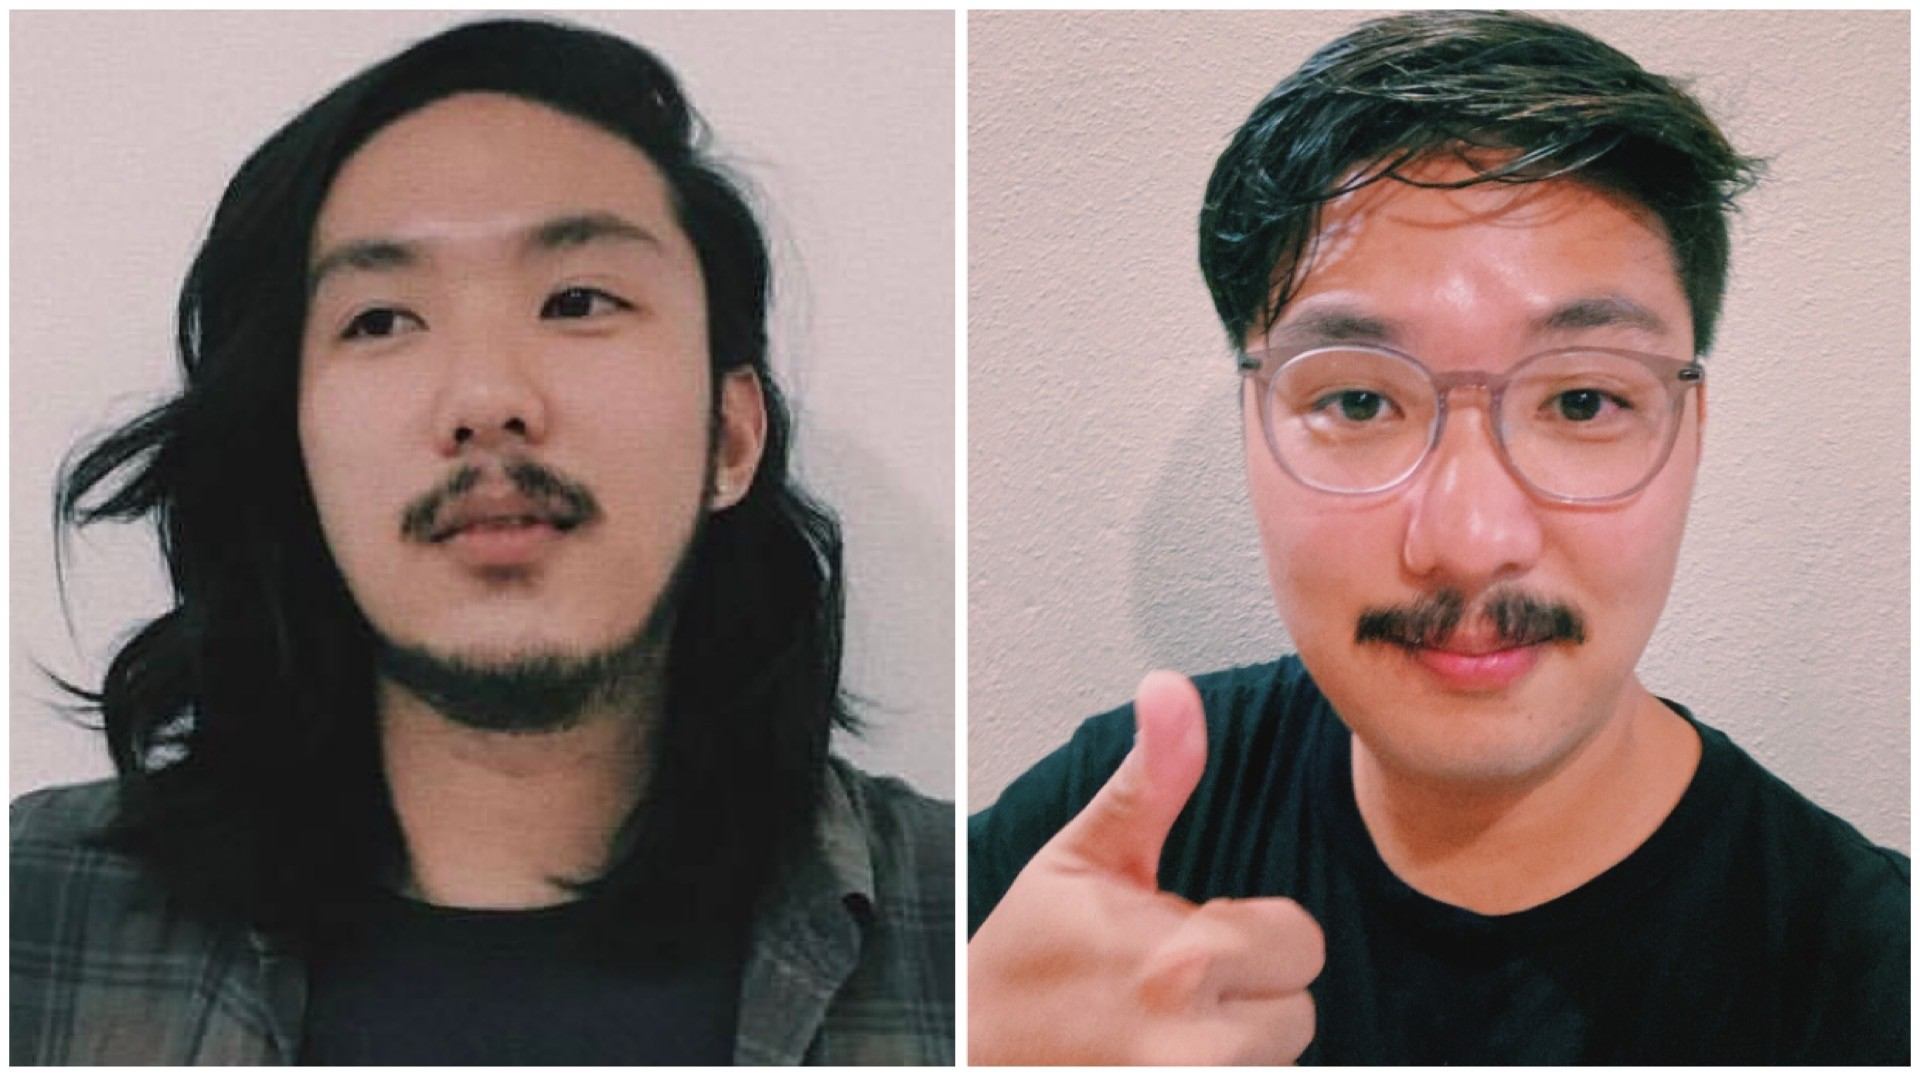 Movember: From Oppa To Ah Pek, To Raise Awareness Of Men's Health Issues